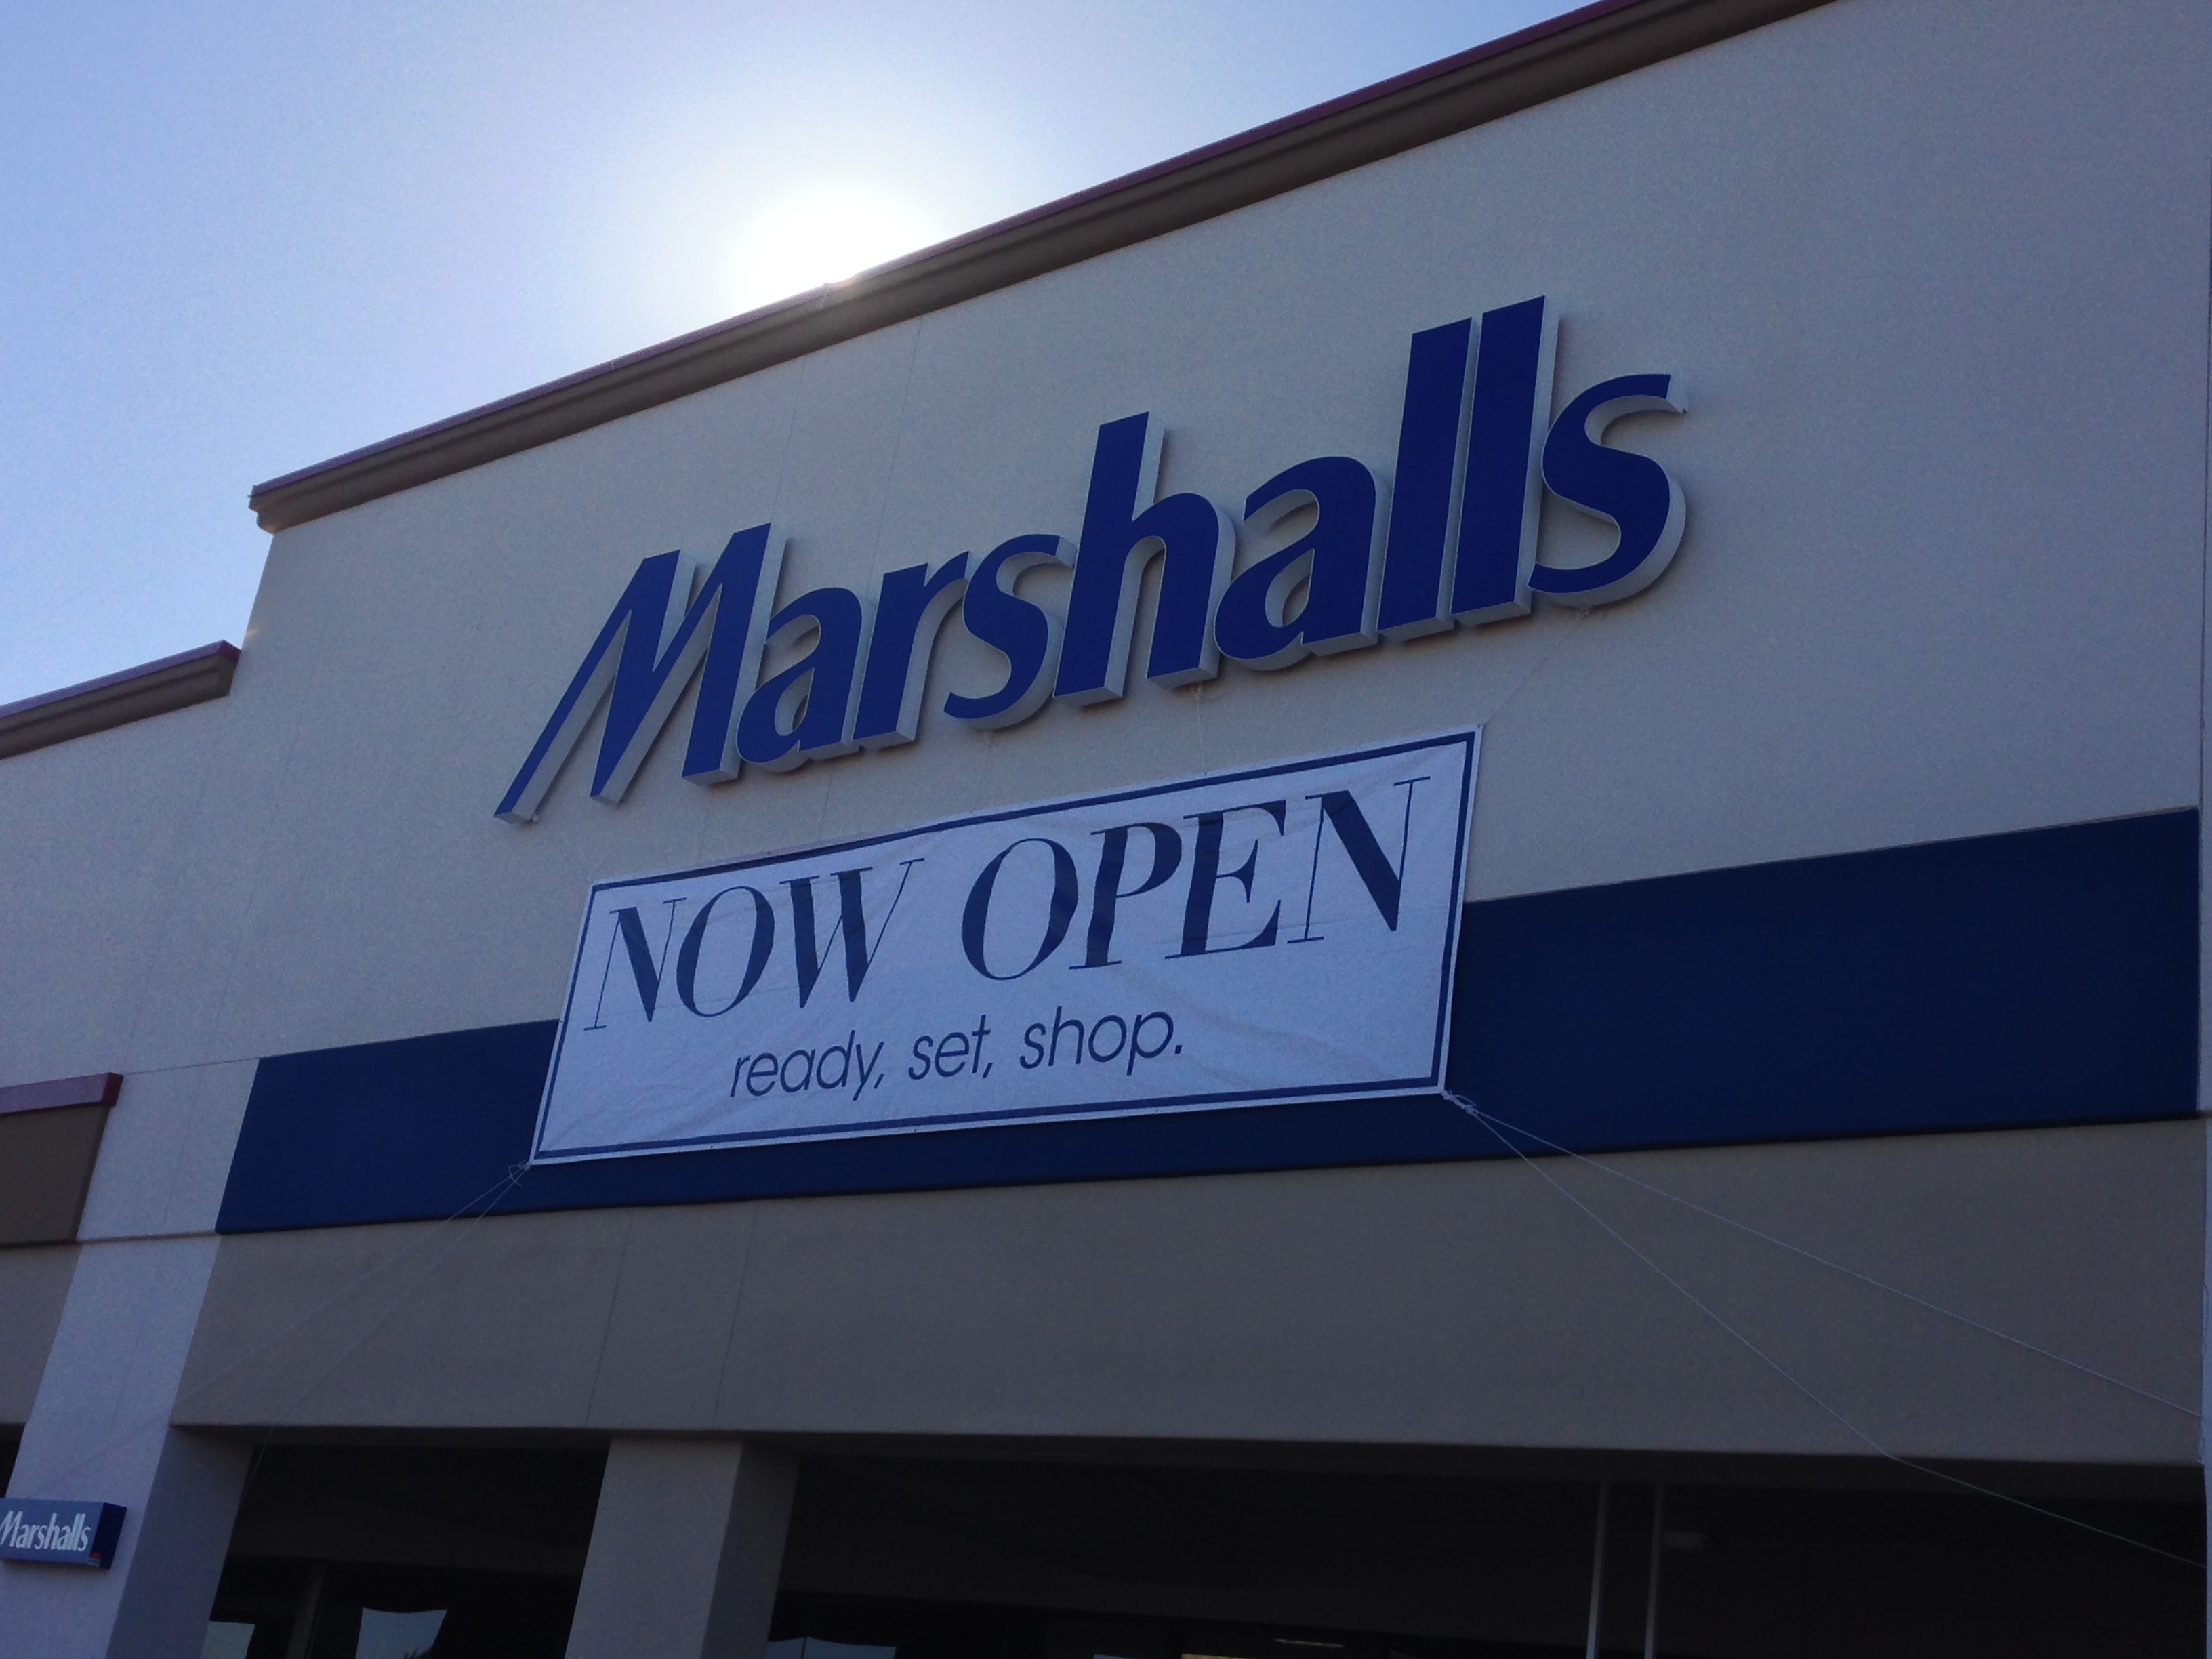 Ahwatukee Marshalls Store now open